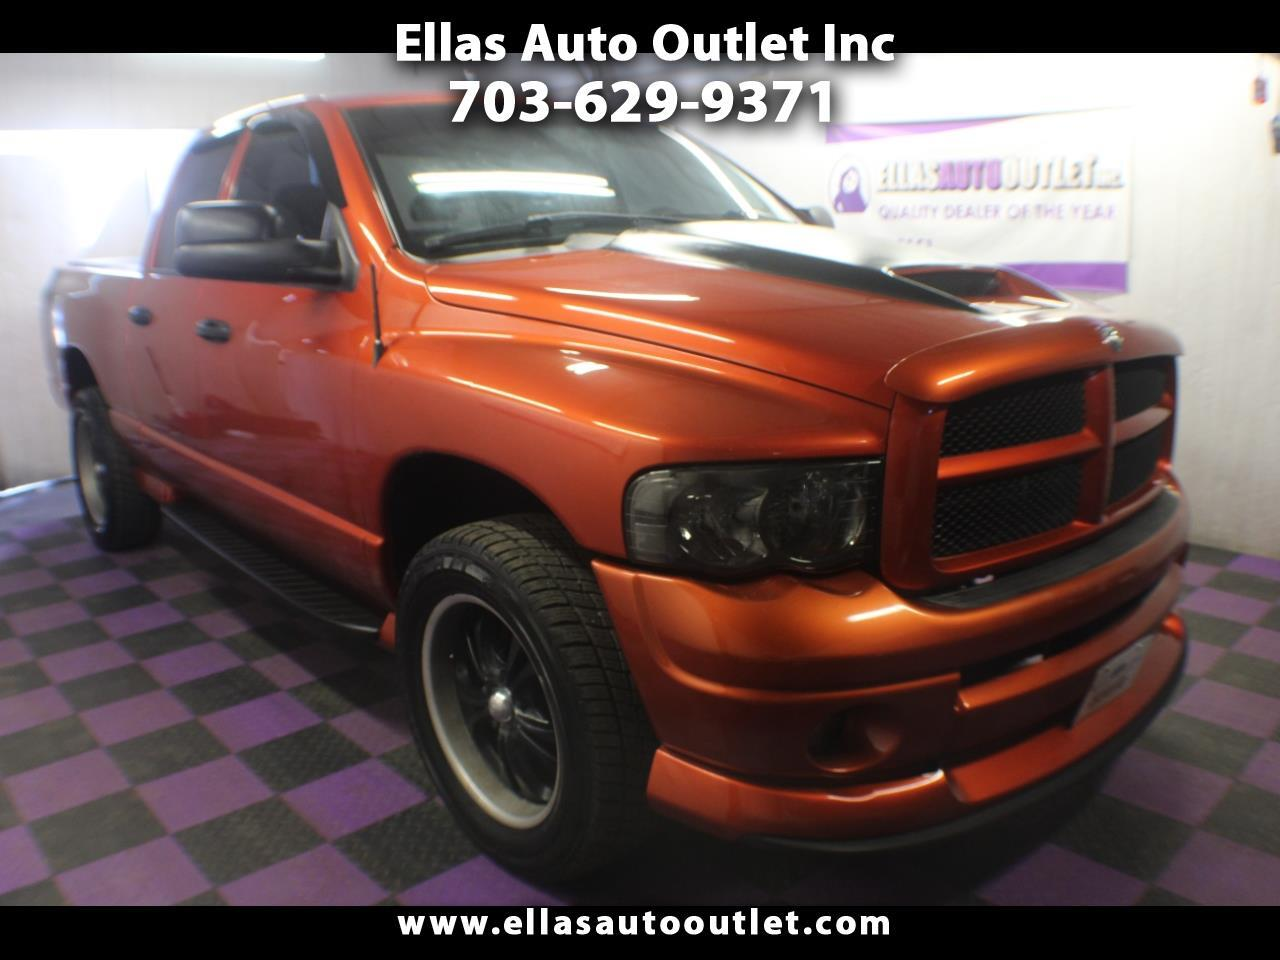 2005 Dodge Ram 1500 DAYTONA 4 DOOR QUAD CAB